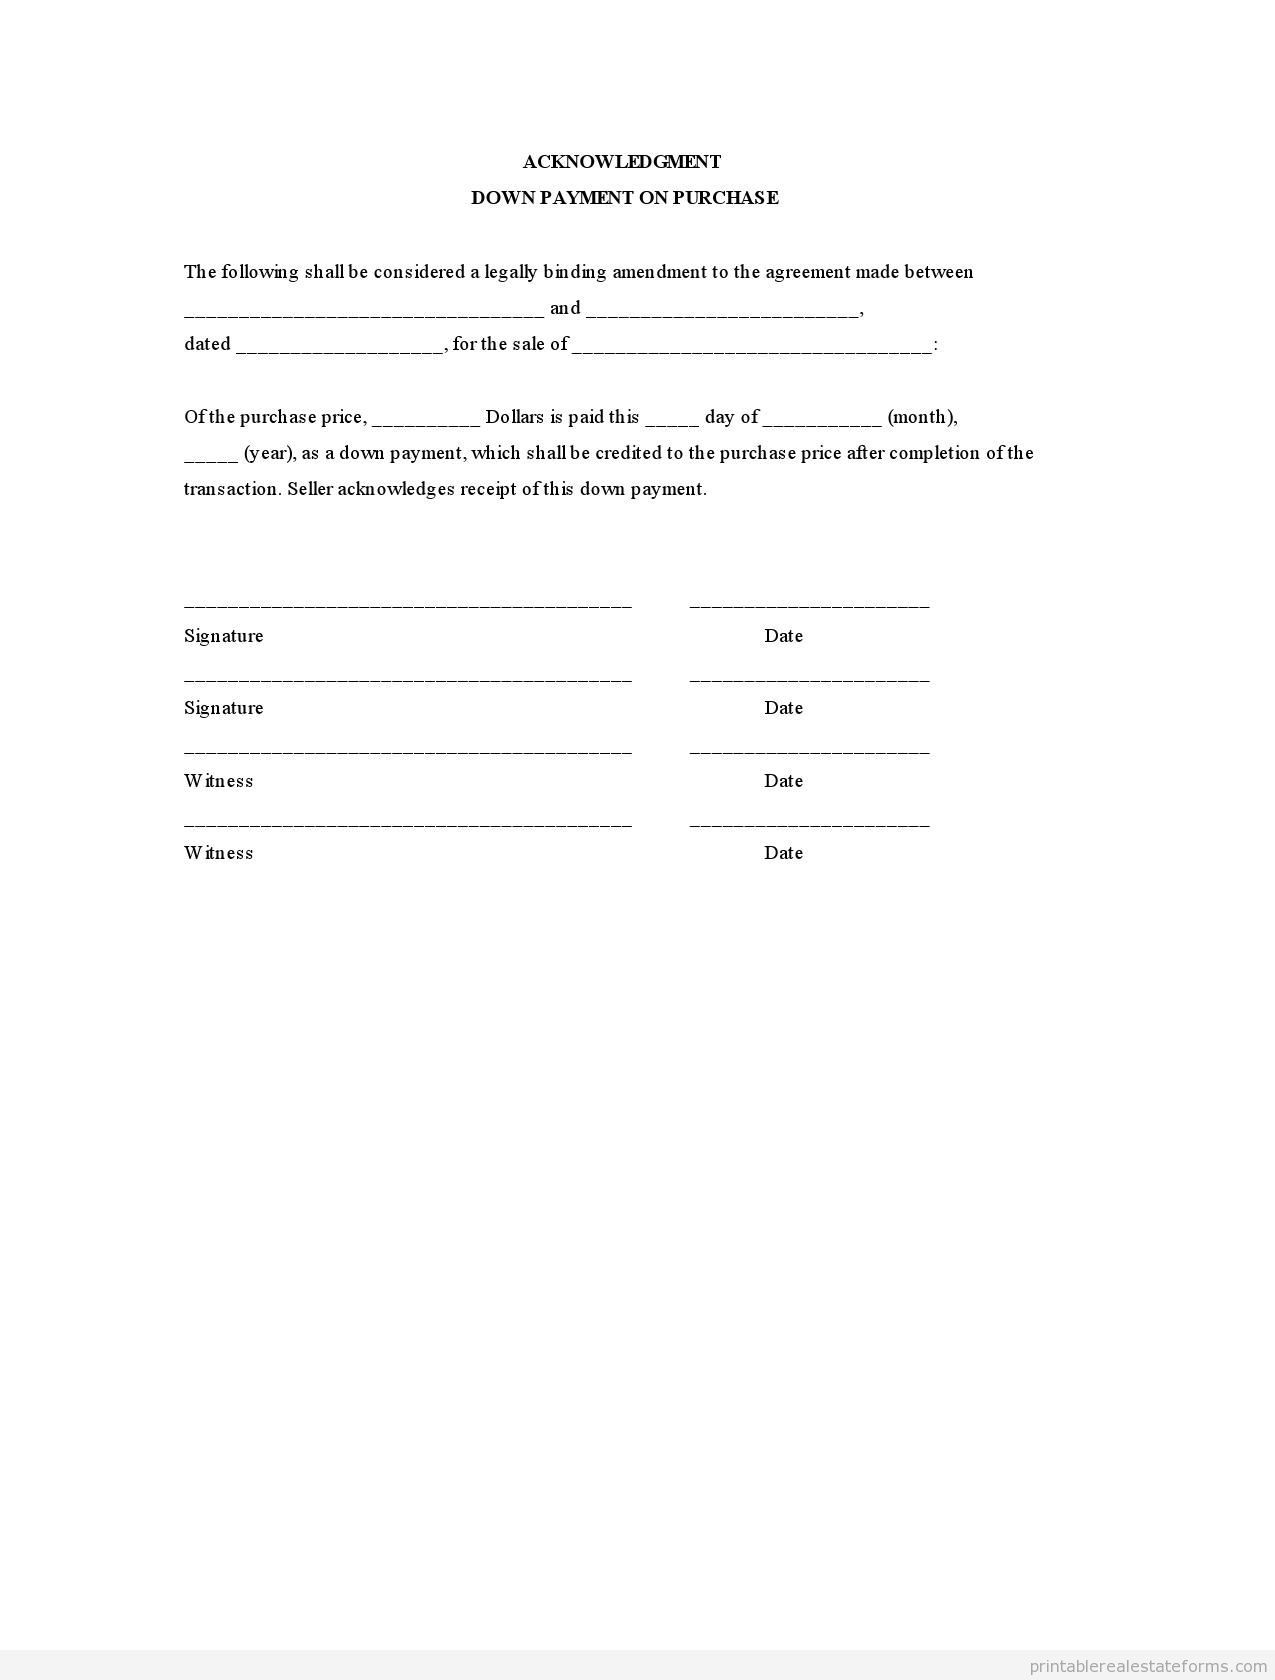 Free Printable Acknowledgment Down Payment On Purchase Form  Pdf  U0026 Word